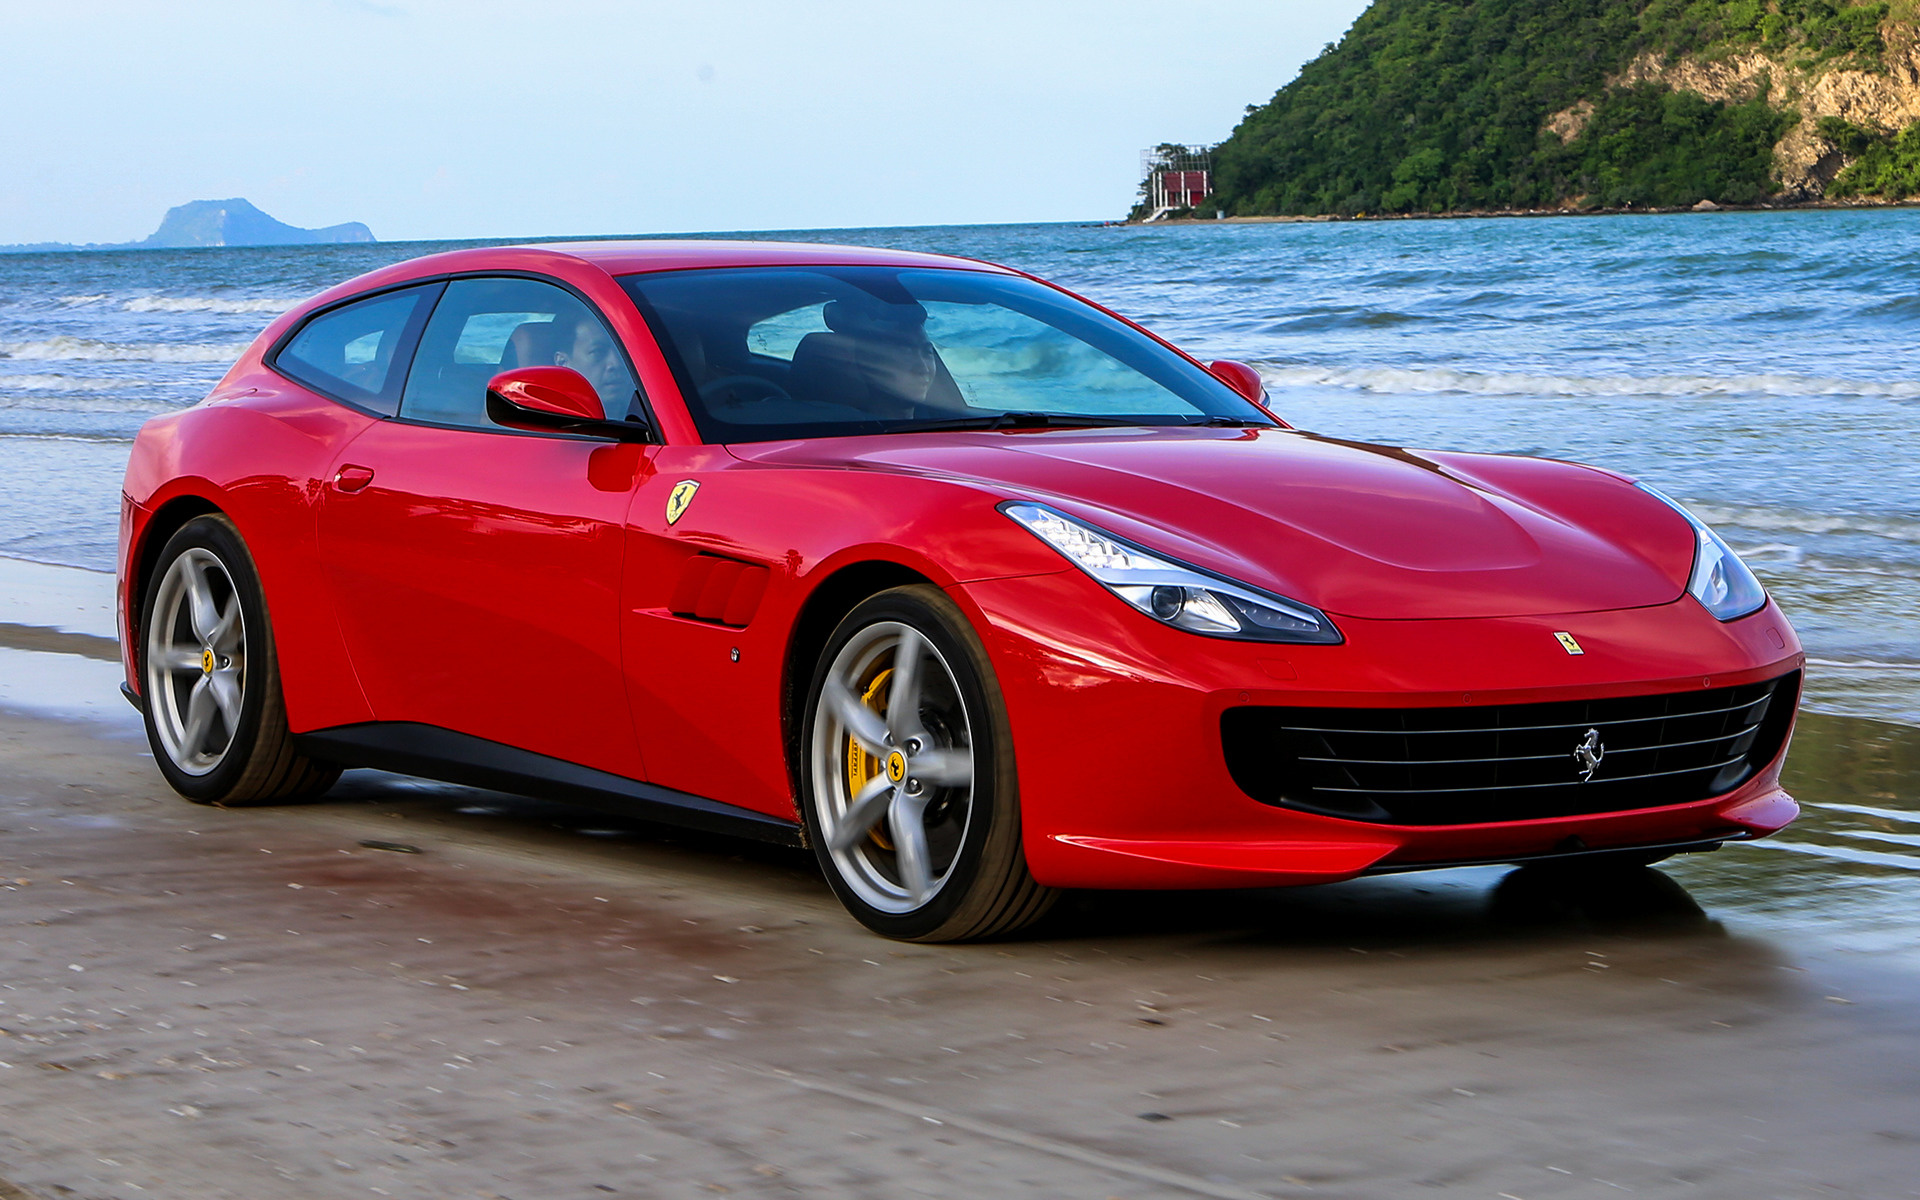 2017 Ferrari Gtc4lusso T Th Wallpapers And Hd Images Car Pixel